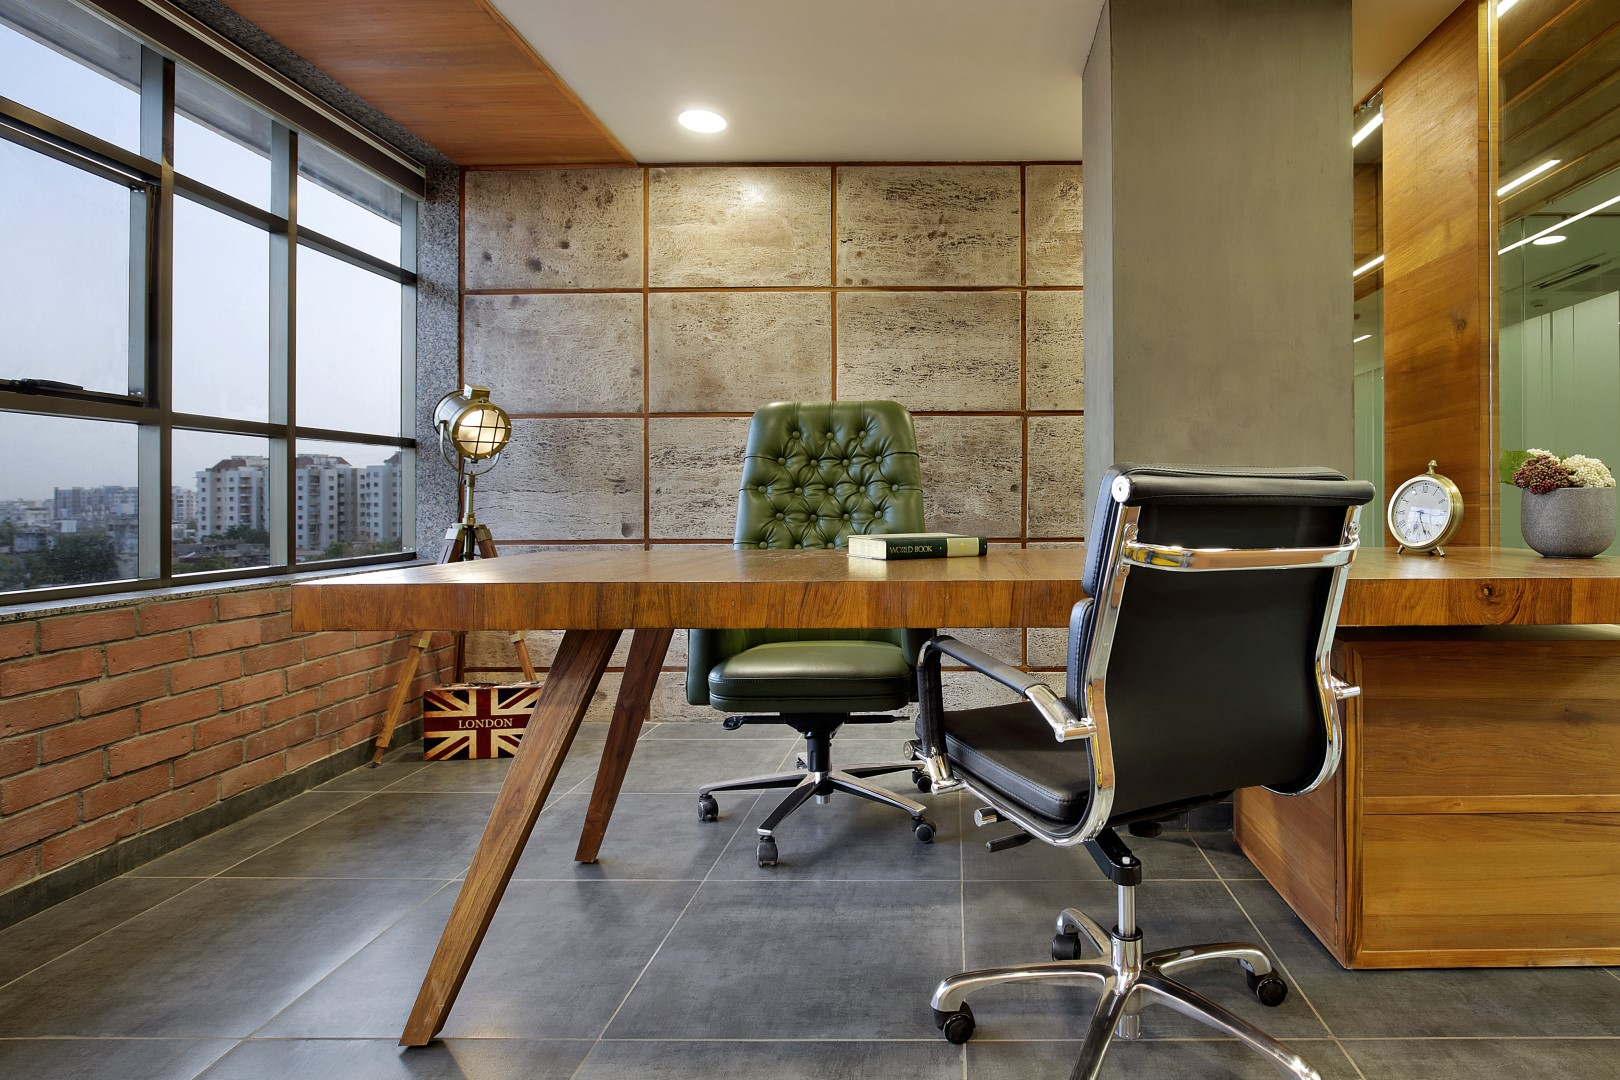 Top 10 office interior design in india the architects diary for Office interior design software free download full version